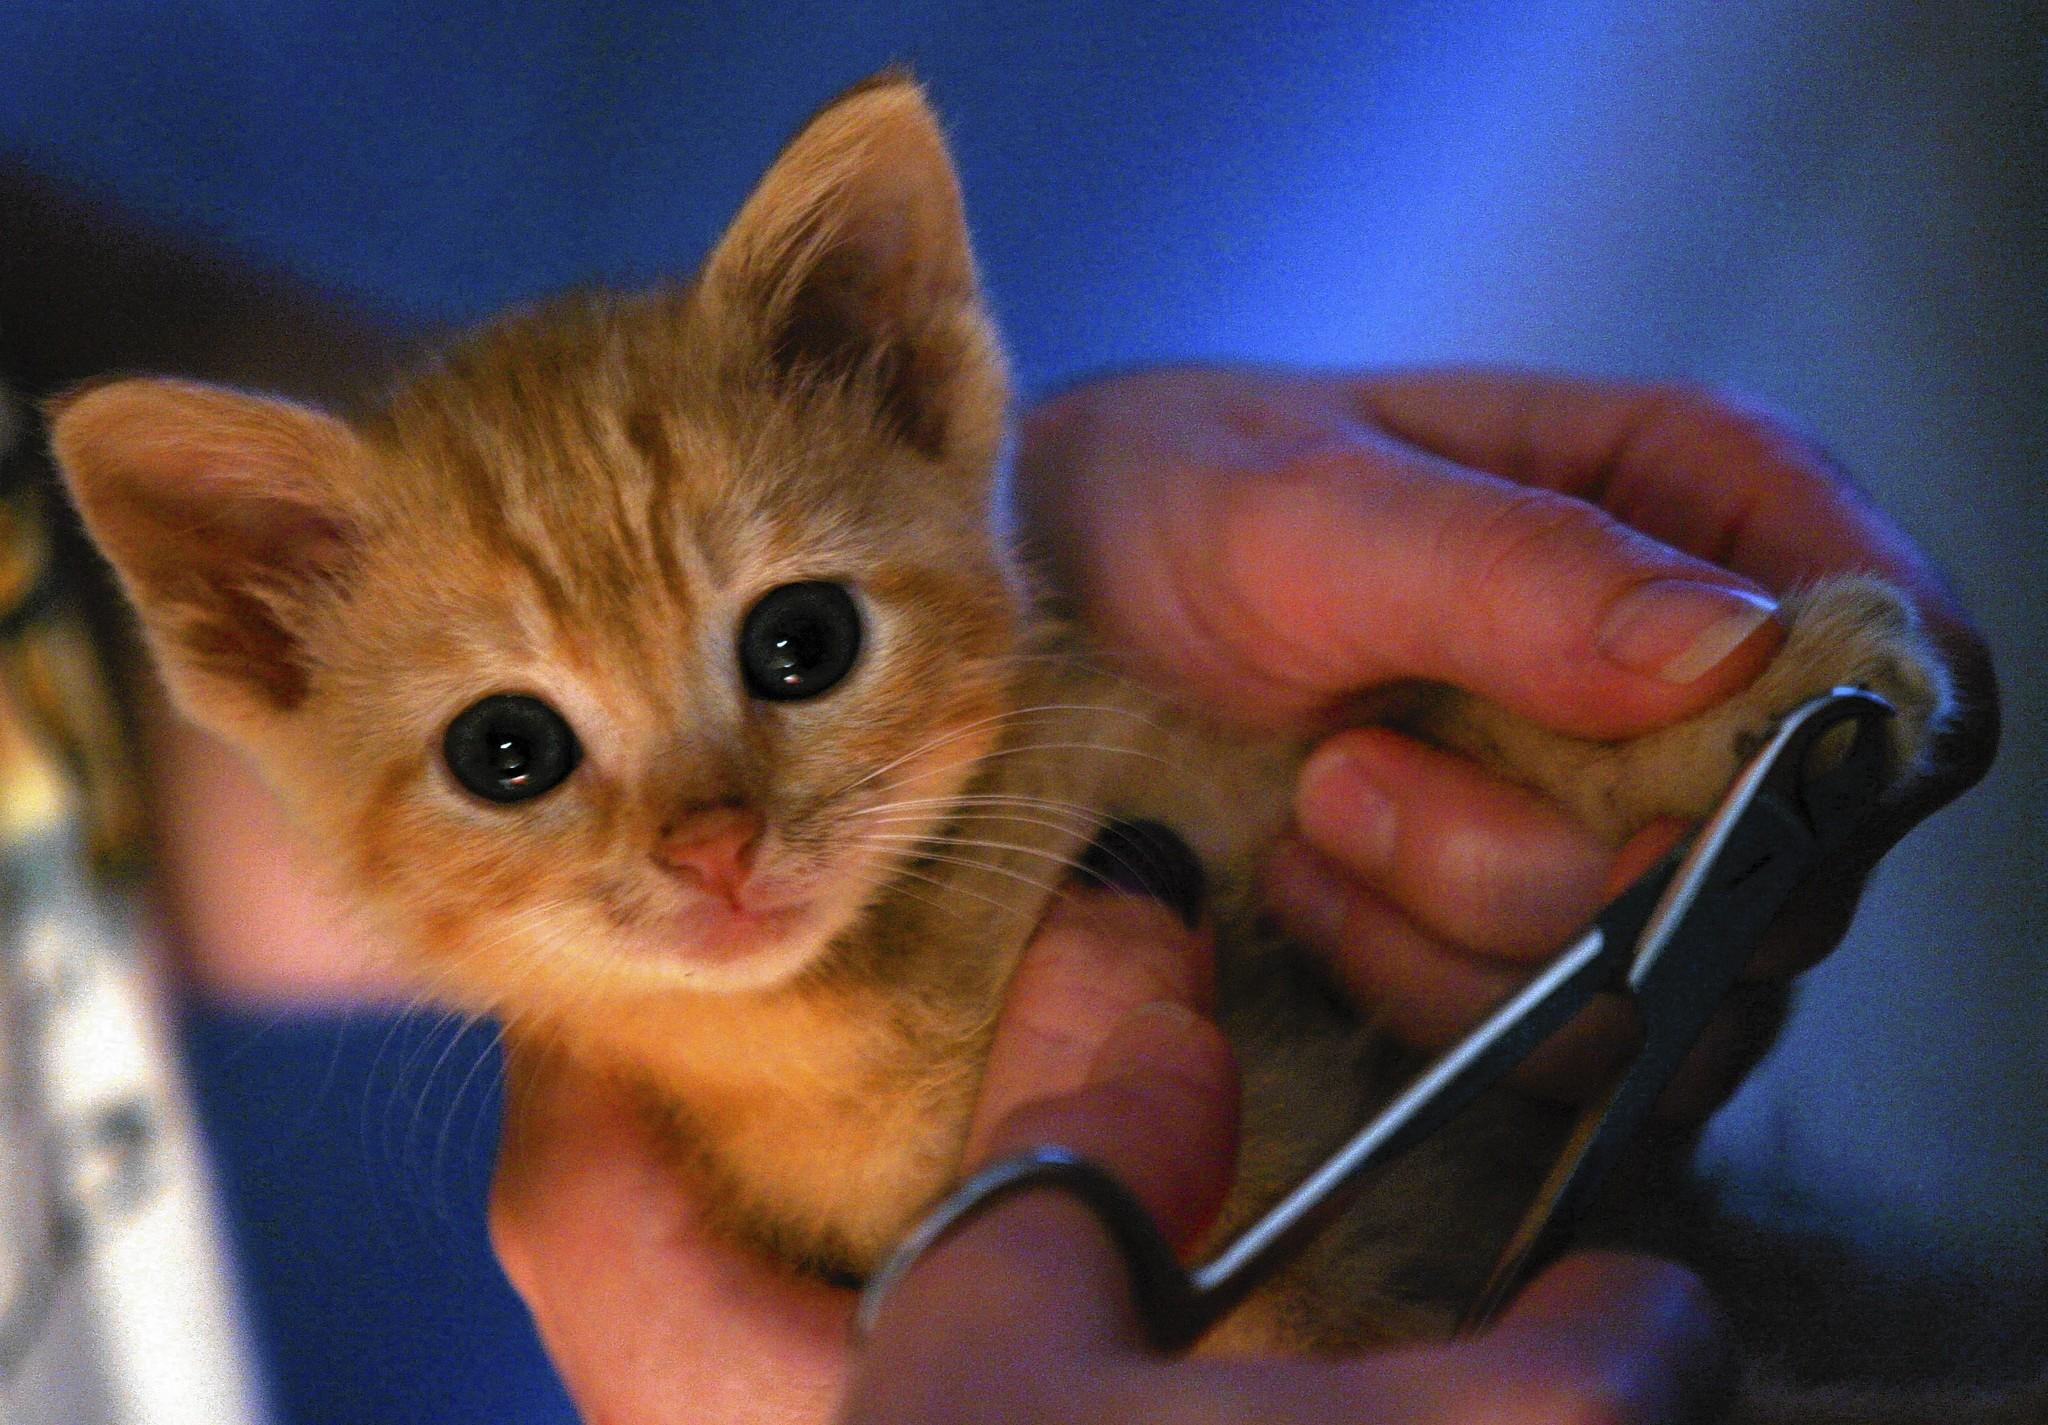 It's easy to get a kitten or young cat used to having the tips of her claws trimmed.